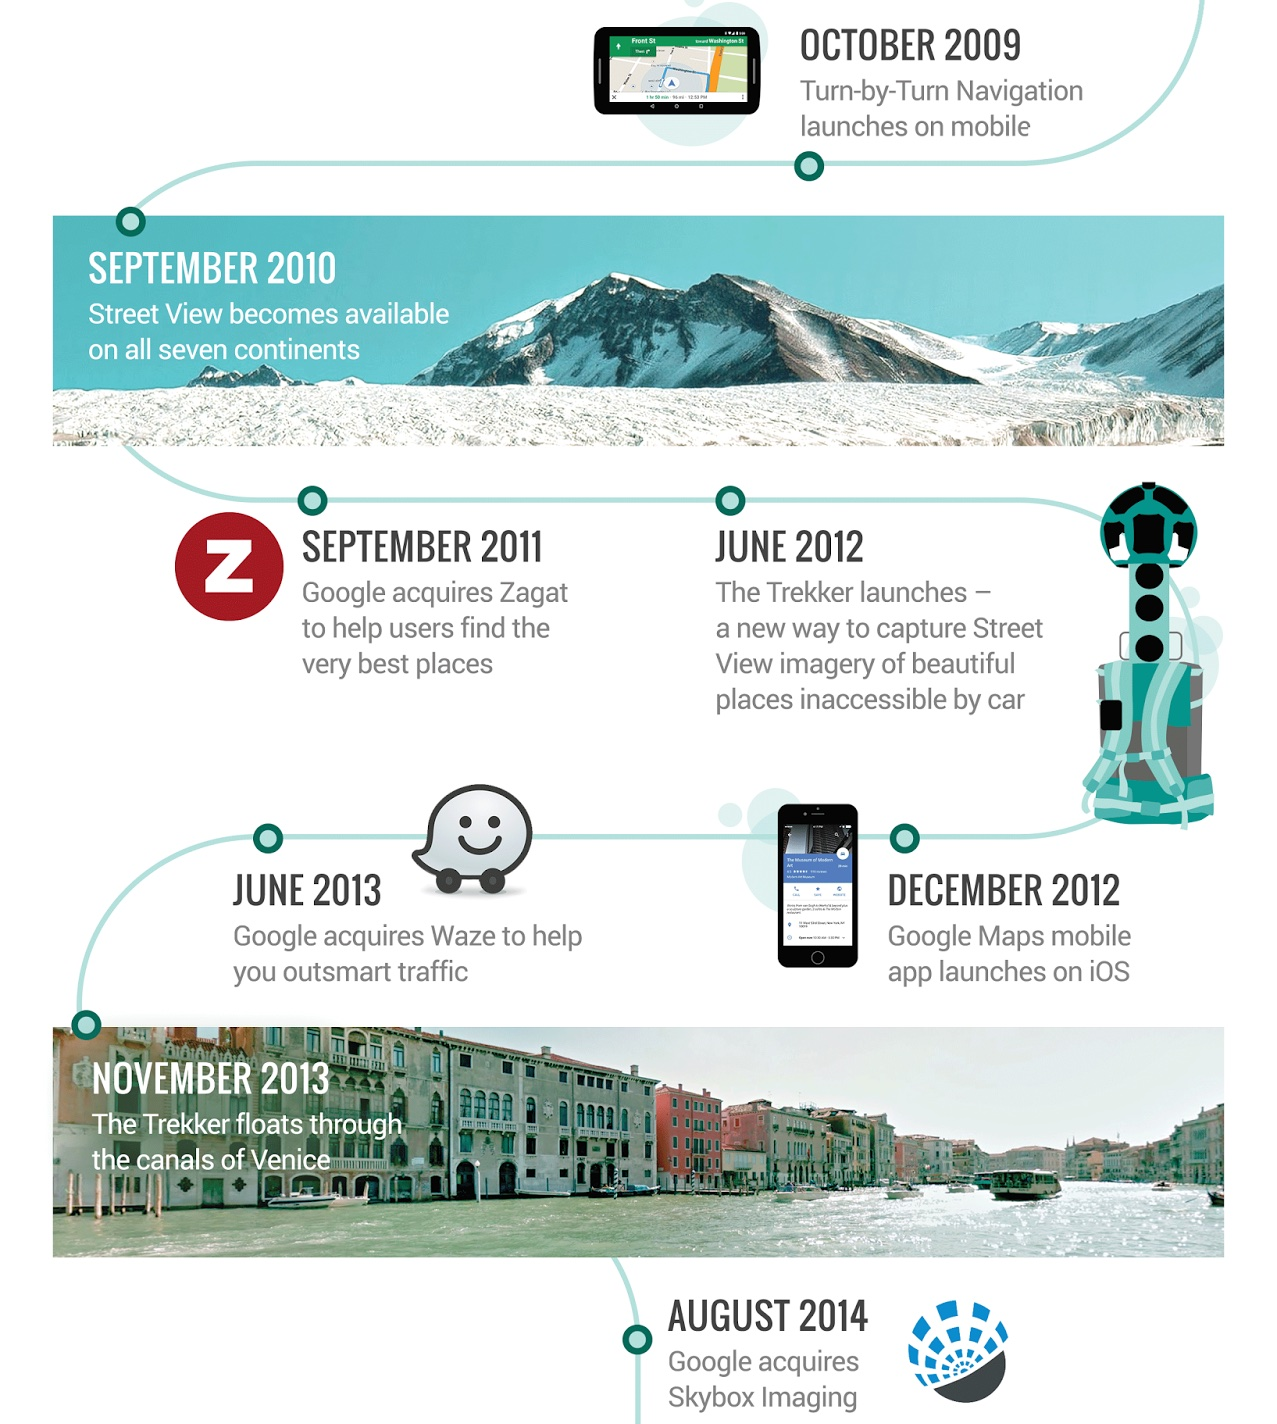 Google Maps turns 10 infographic 002